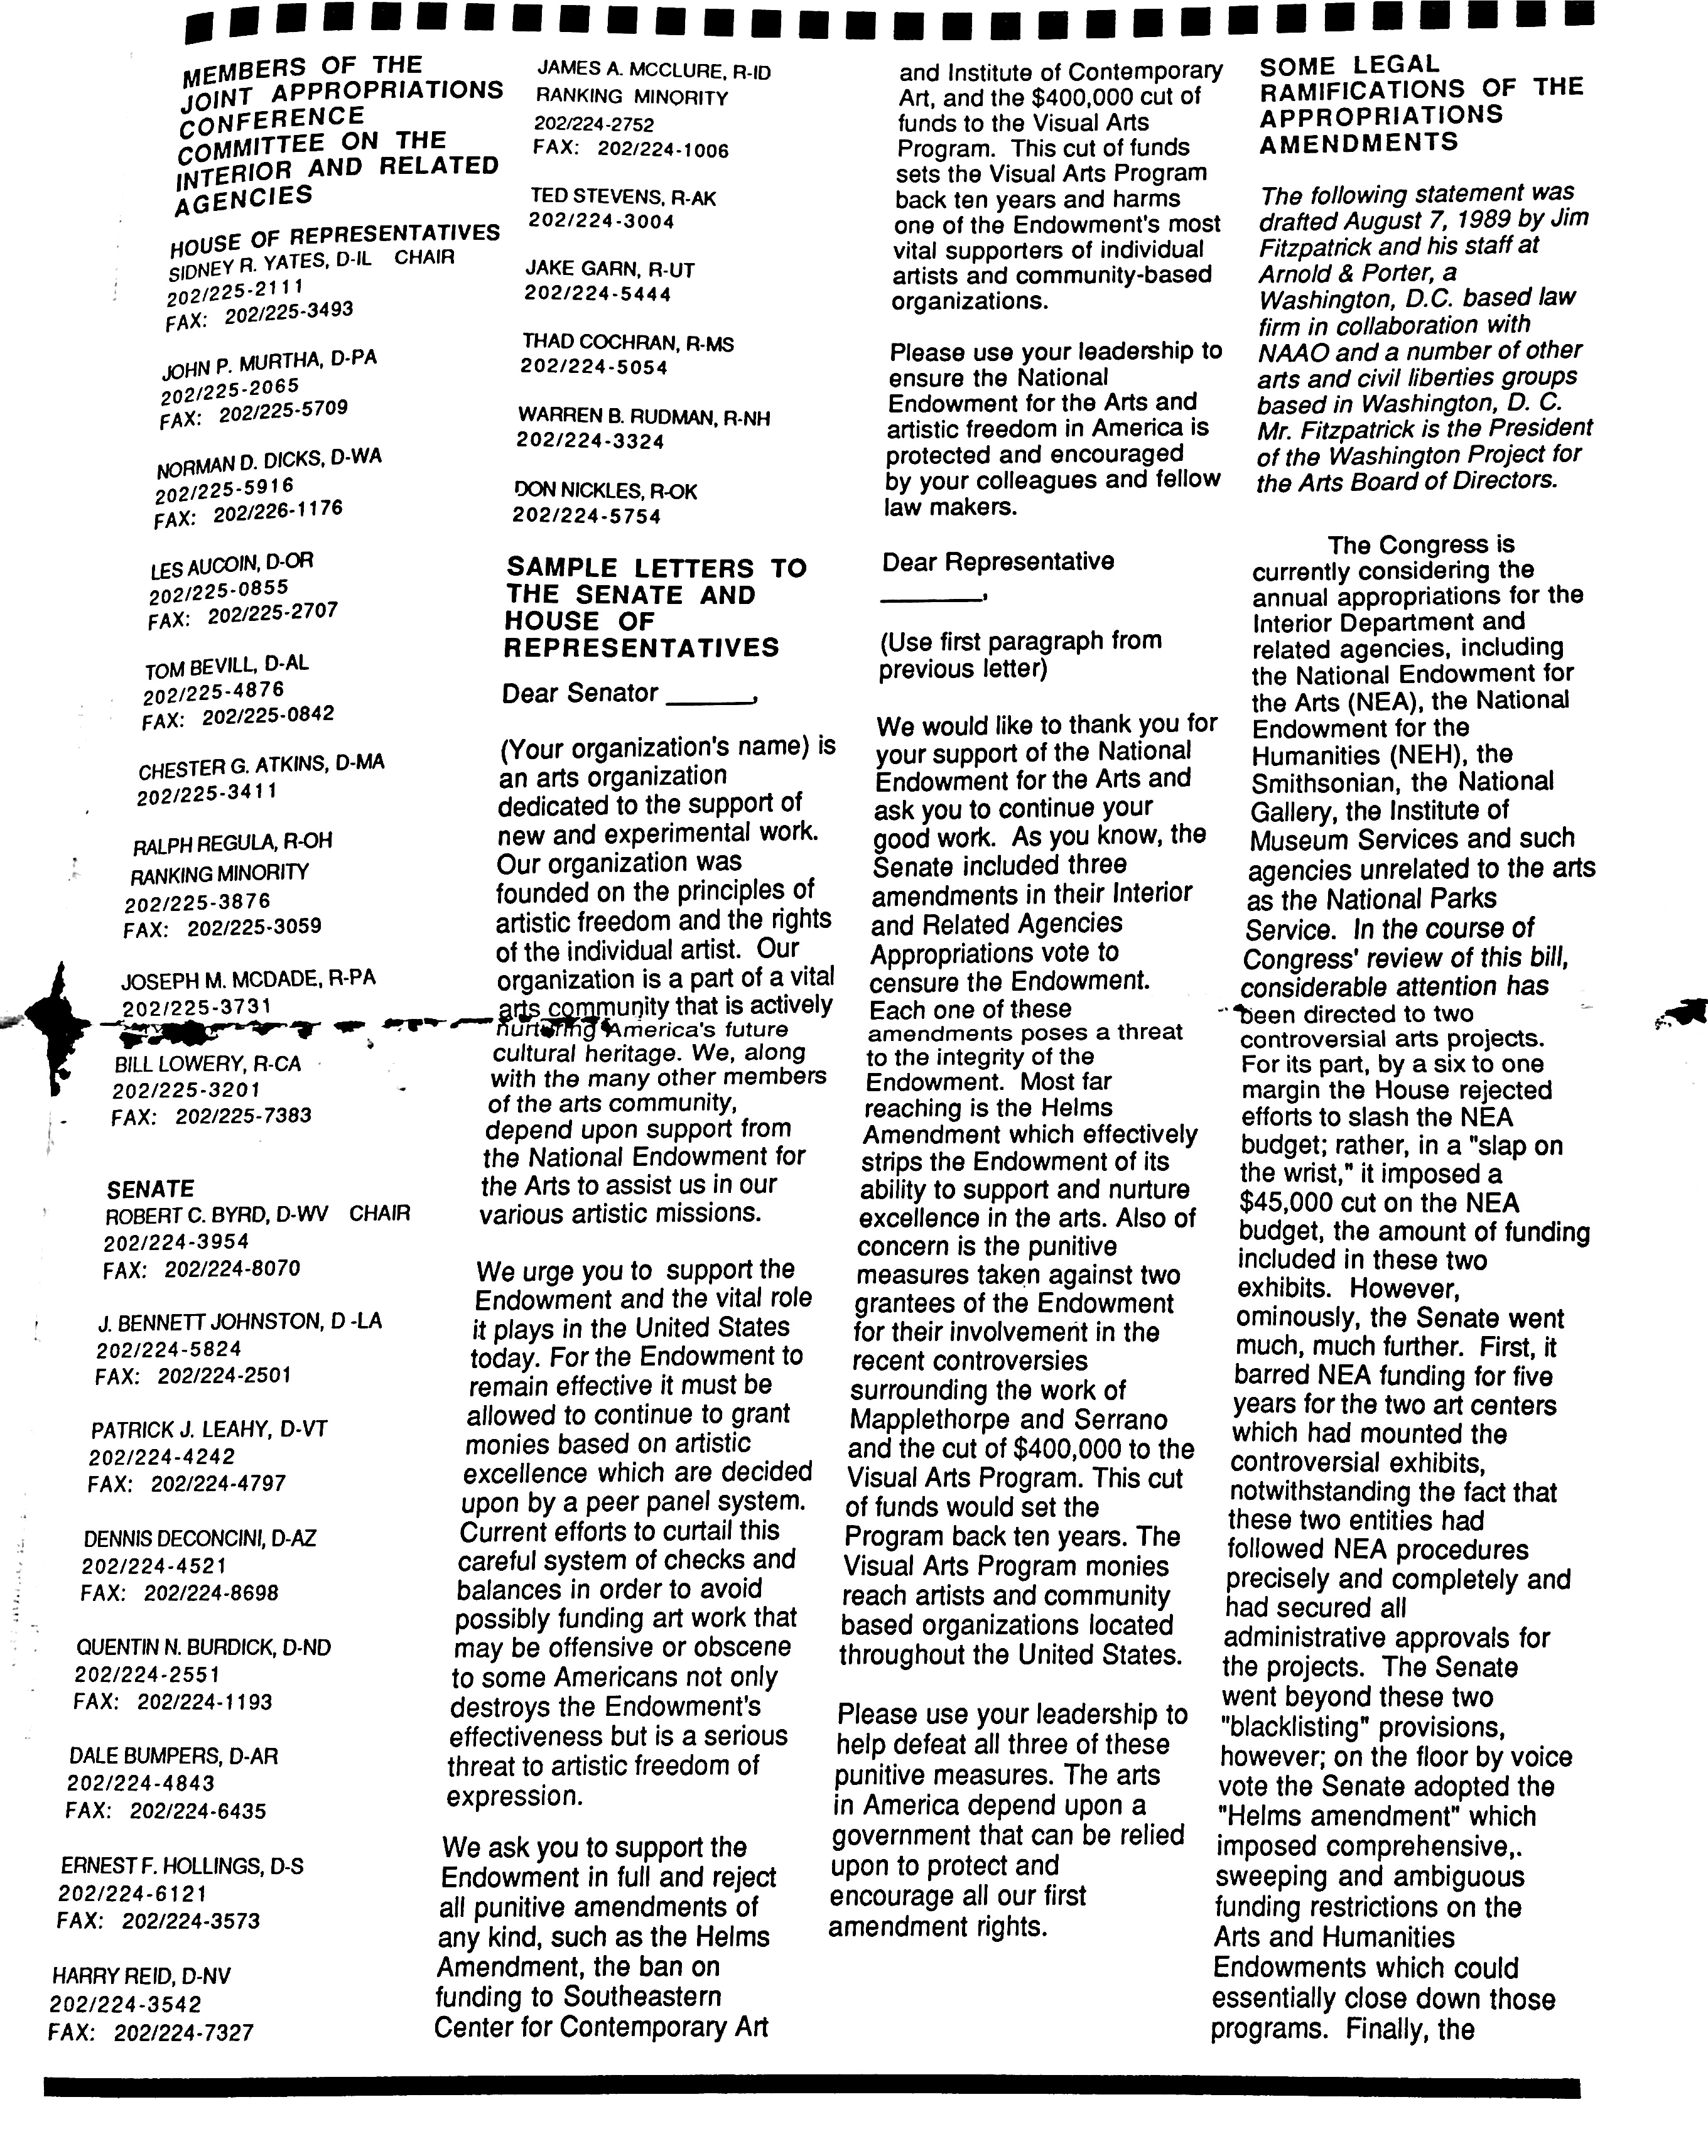 August 16, 1989 Page 3.jpg